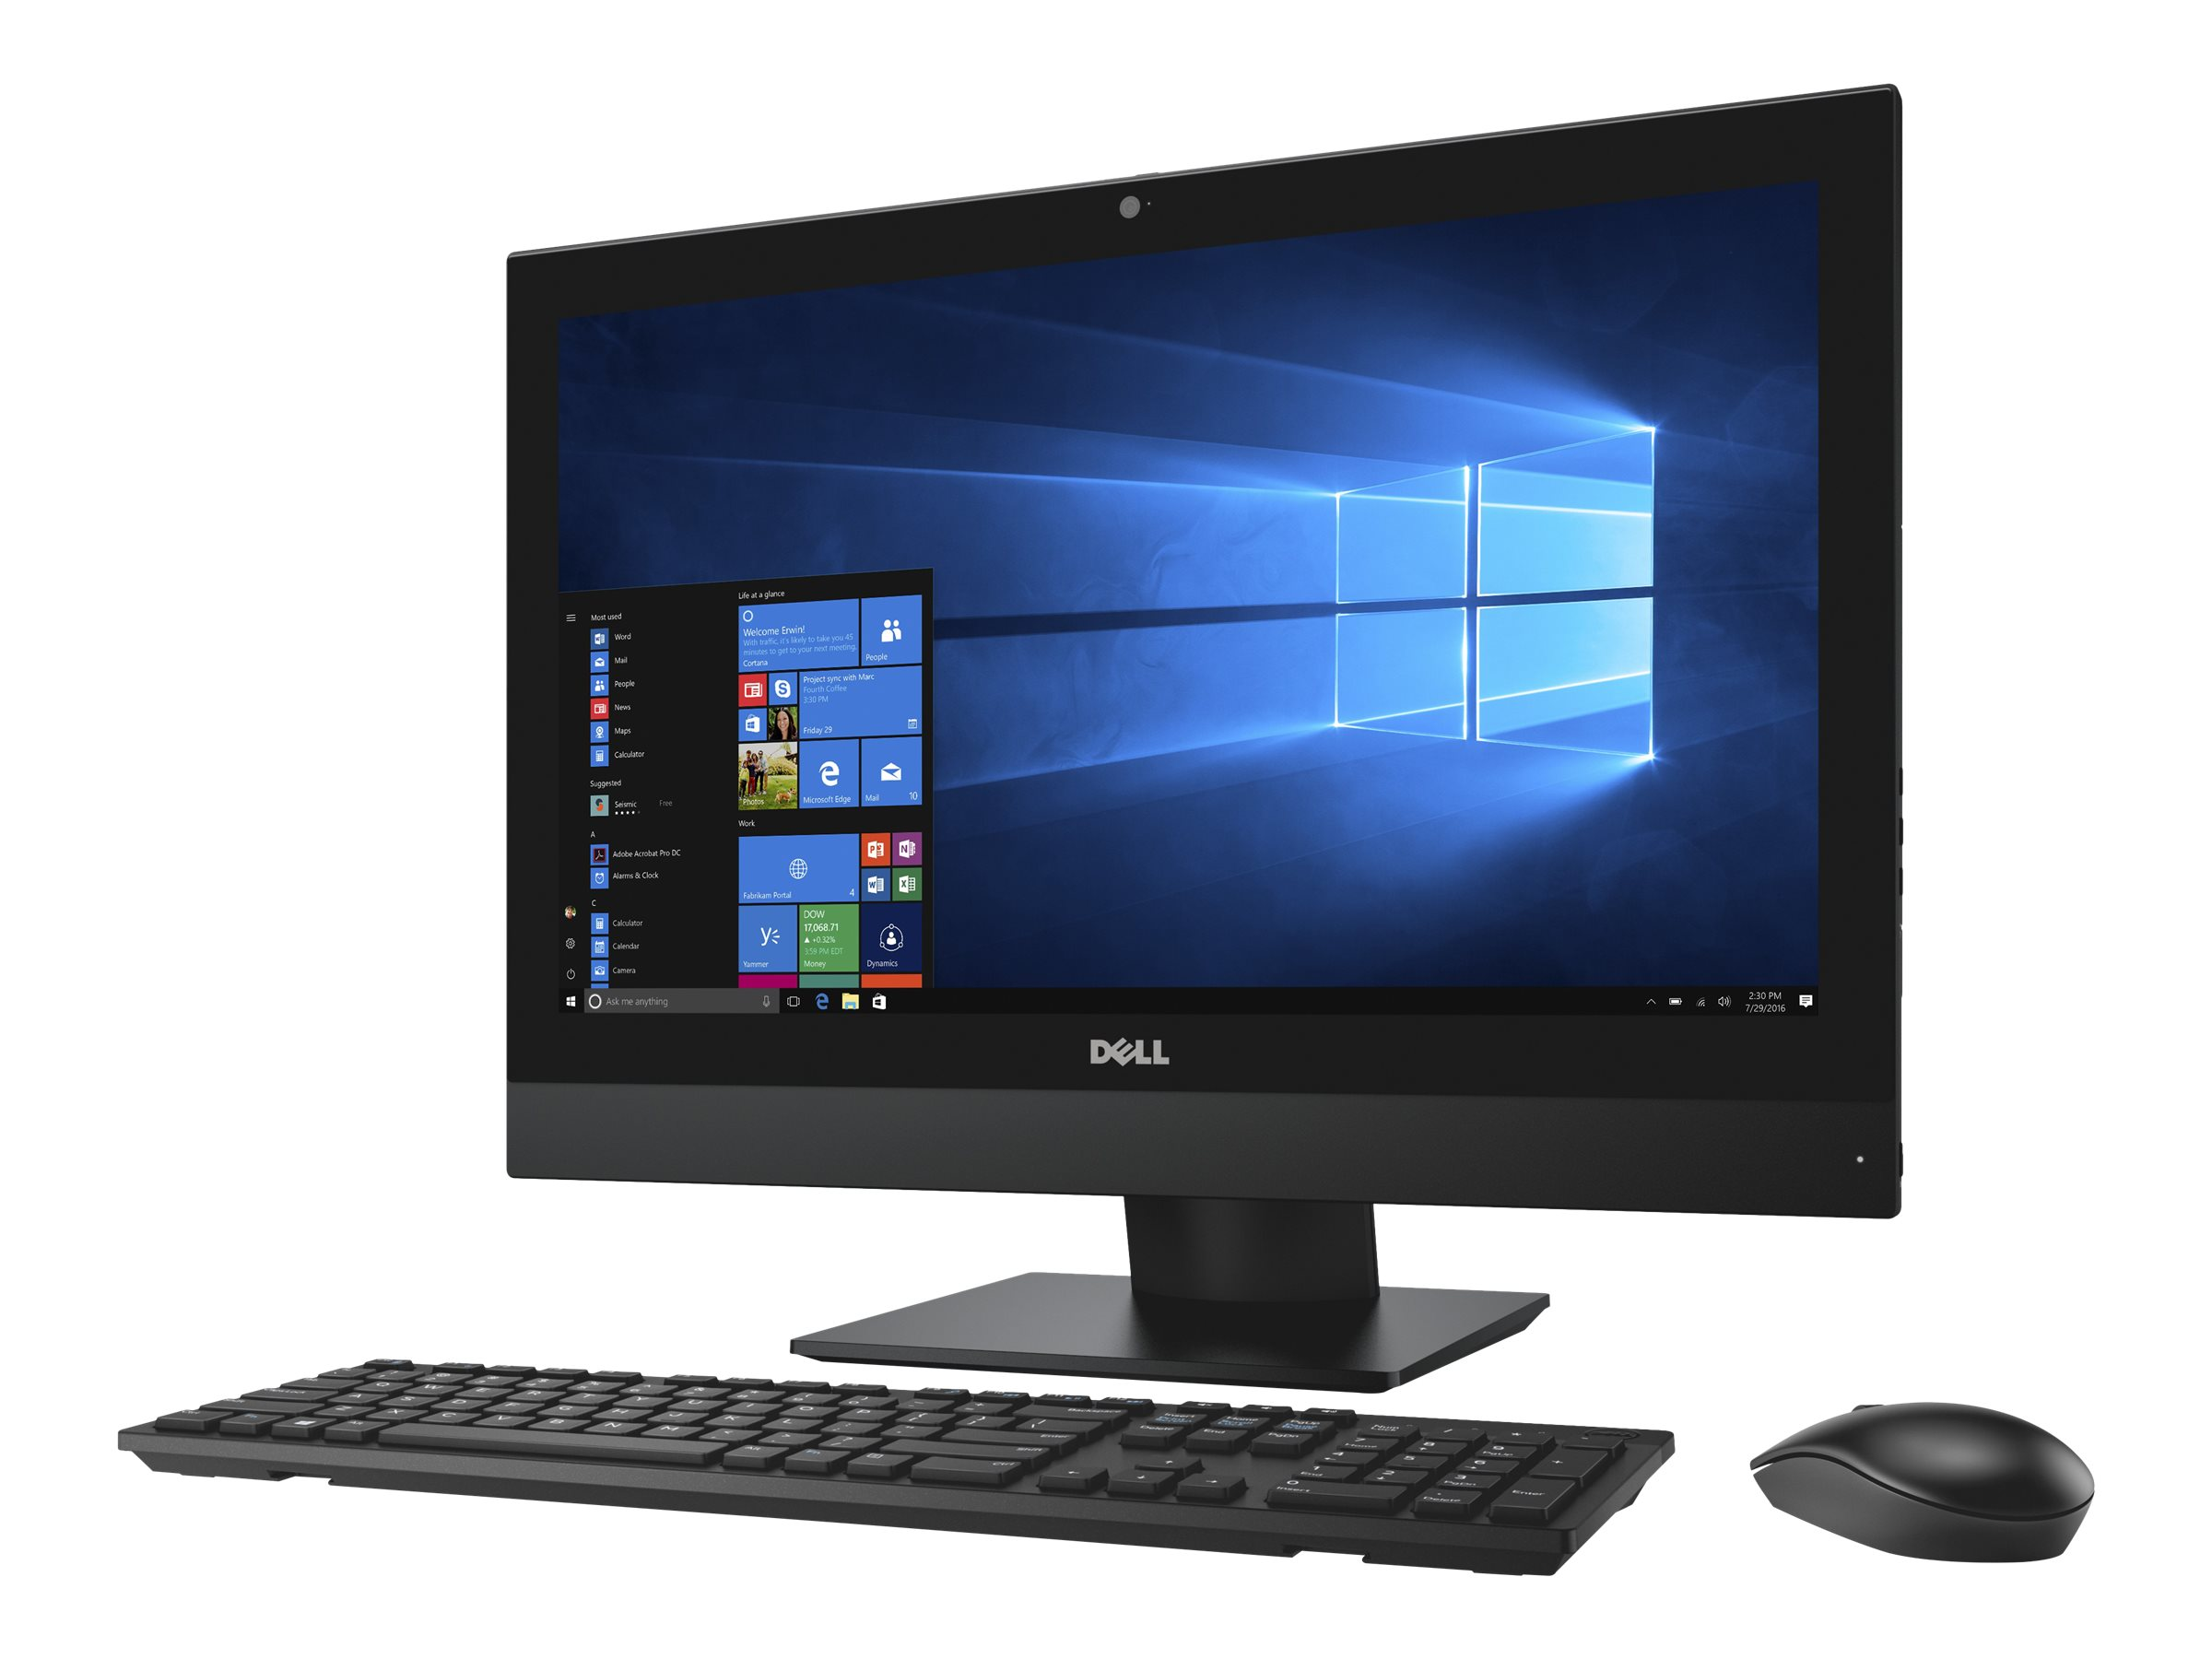 Dell OptiPlex 5250 - All-in-One (Komplettlösung) - 1 x Core i5 7500 / 3.4 GHz - RAM 8 GB - SSD 256 GB - DVD-Writer